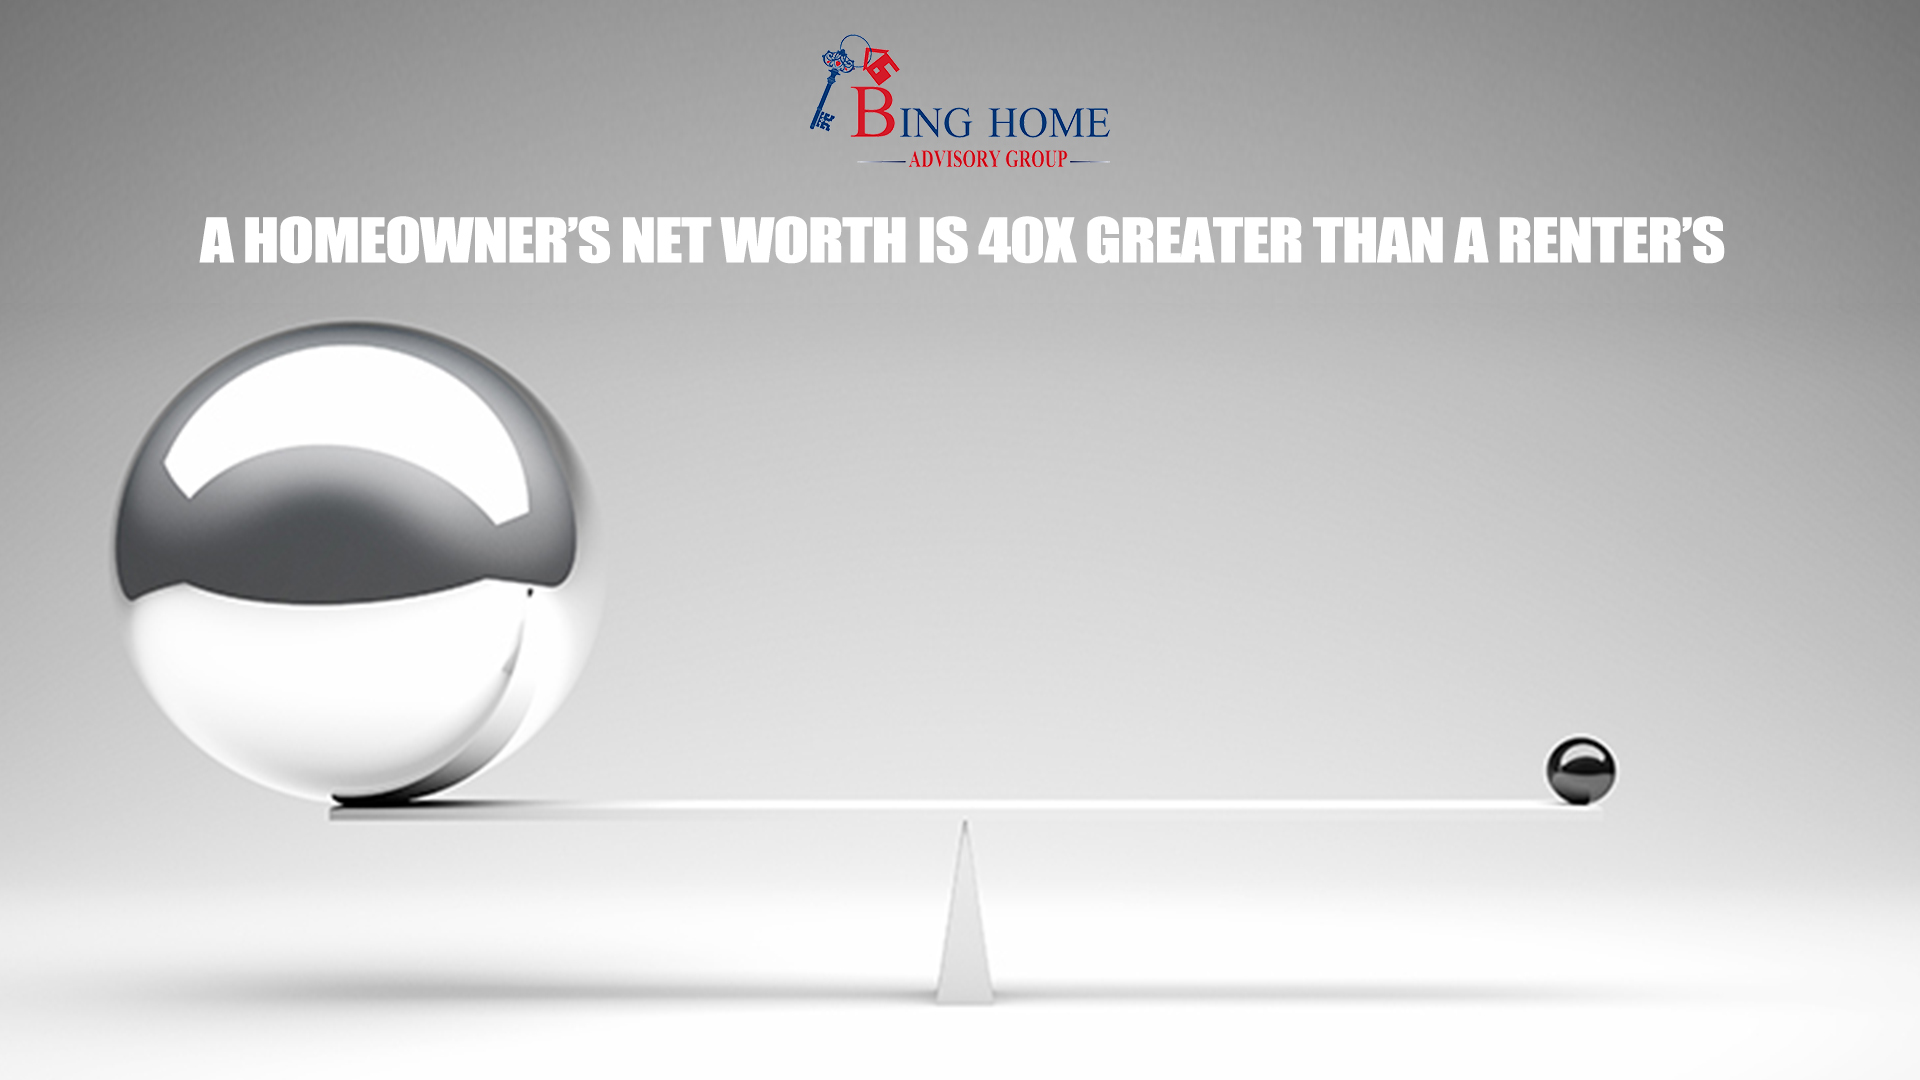 A Homeowner's Net Worth Is 40x Greater Than a Renter's Thmbnail (16 x 9).jpg